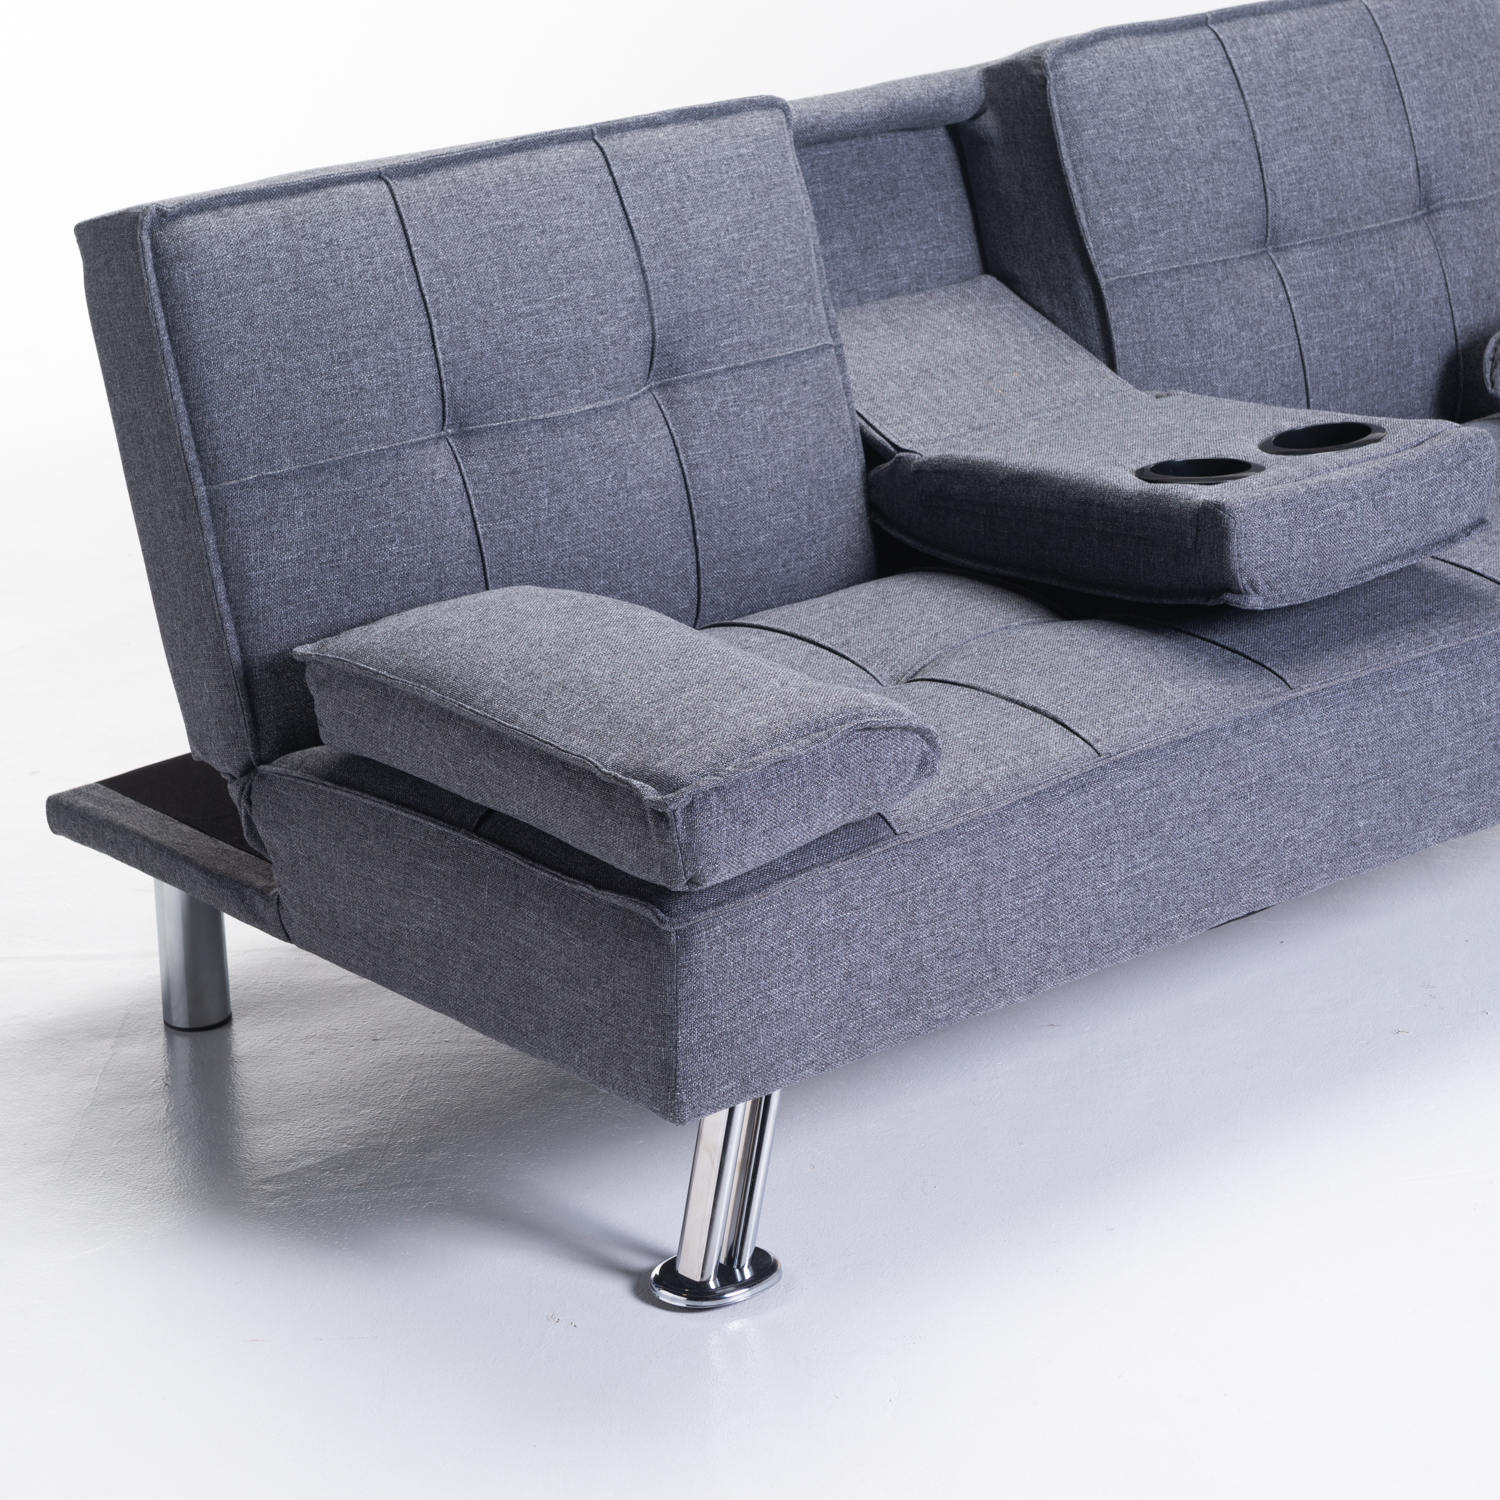 FLOY FABRIC SLEEPER COUCH